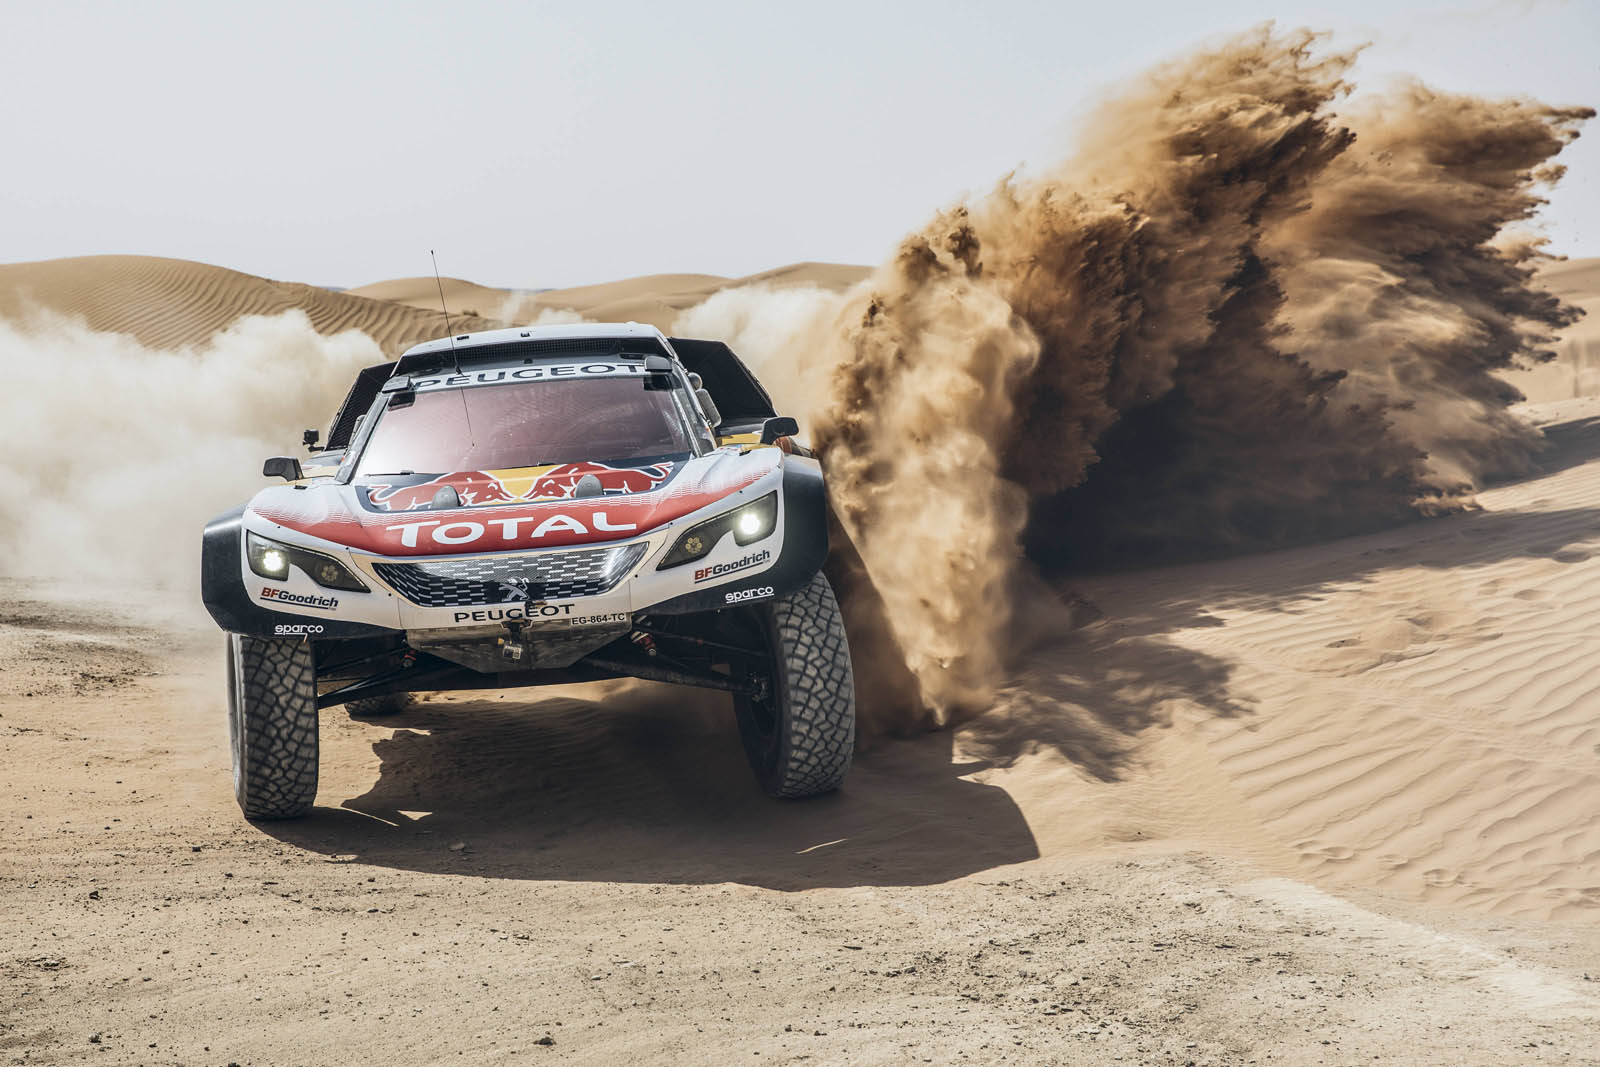 peugeot 39 s going for one more dakar win before it quits. Black Bedroom Furniture Sets. Home Design Ideas